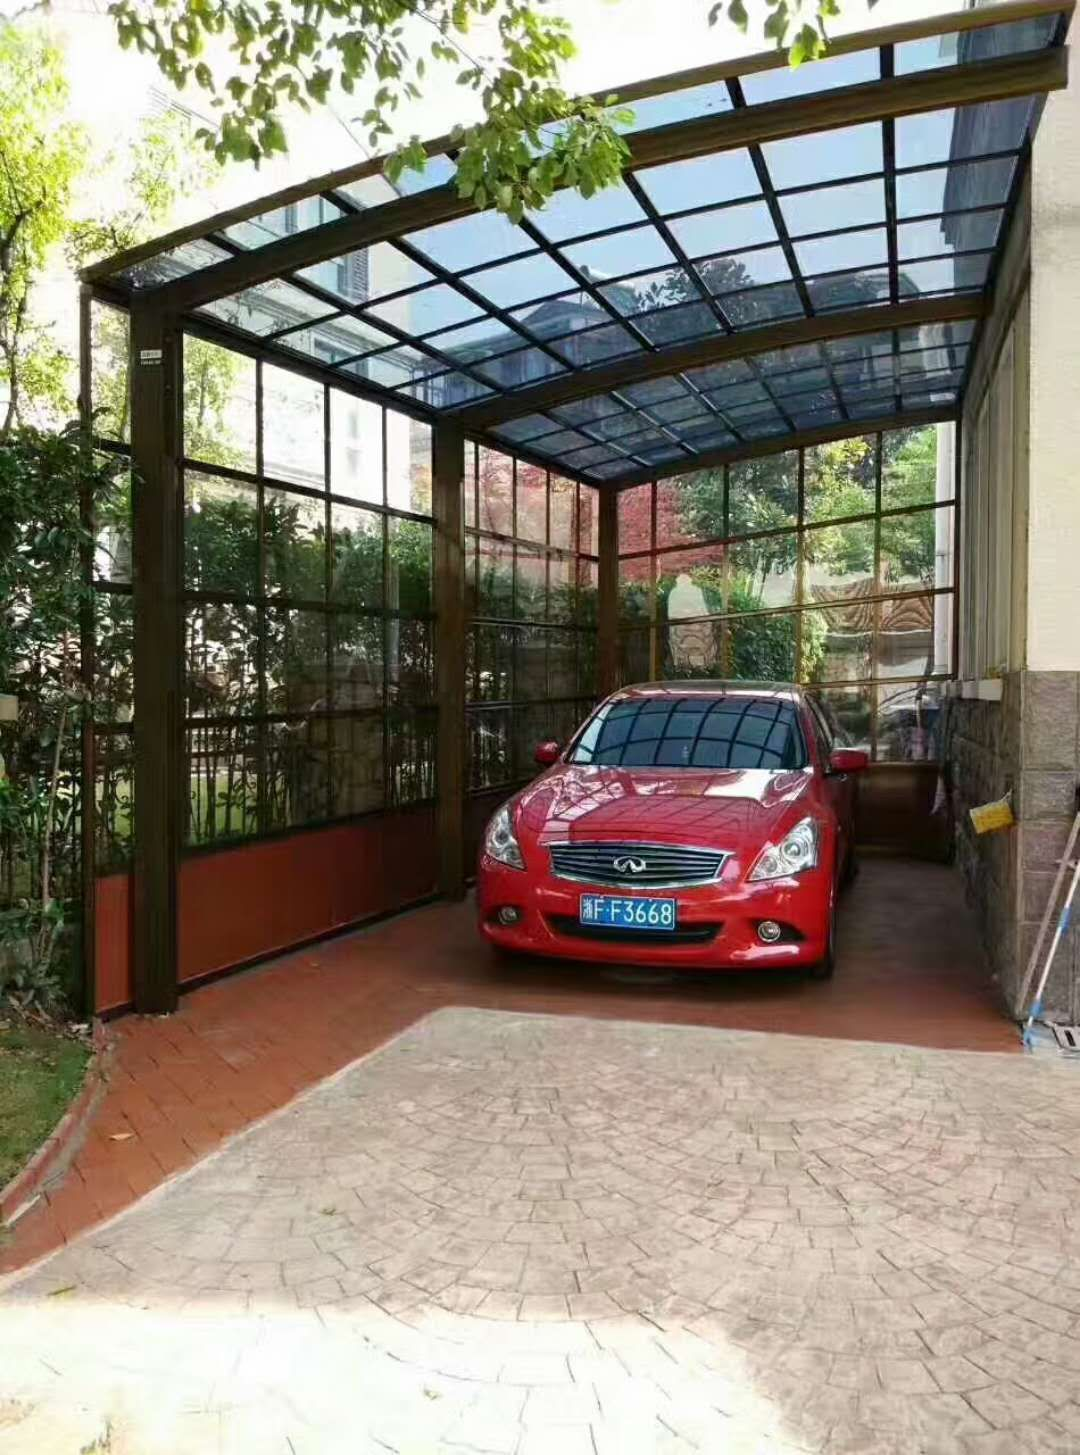 Curved Roof Carport Kits 2020 in 2020 Roof design